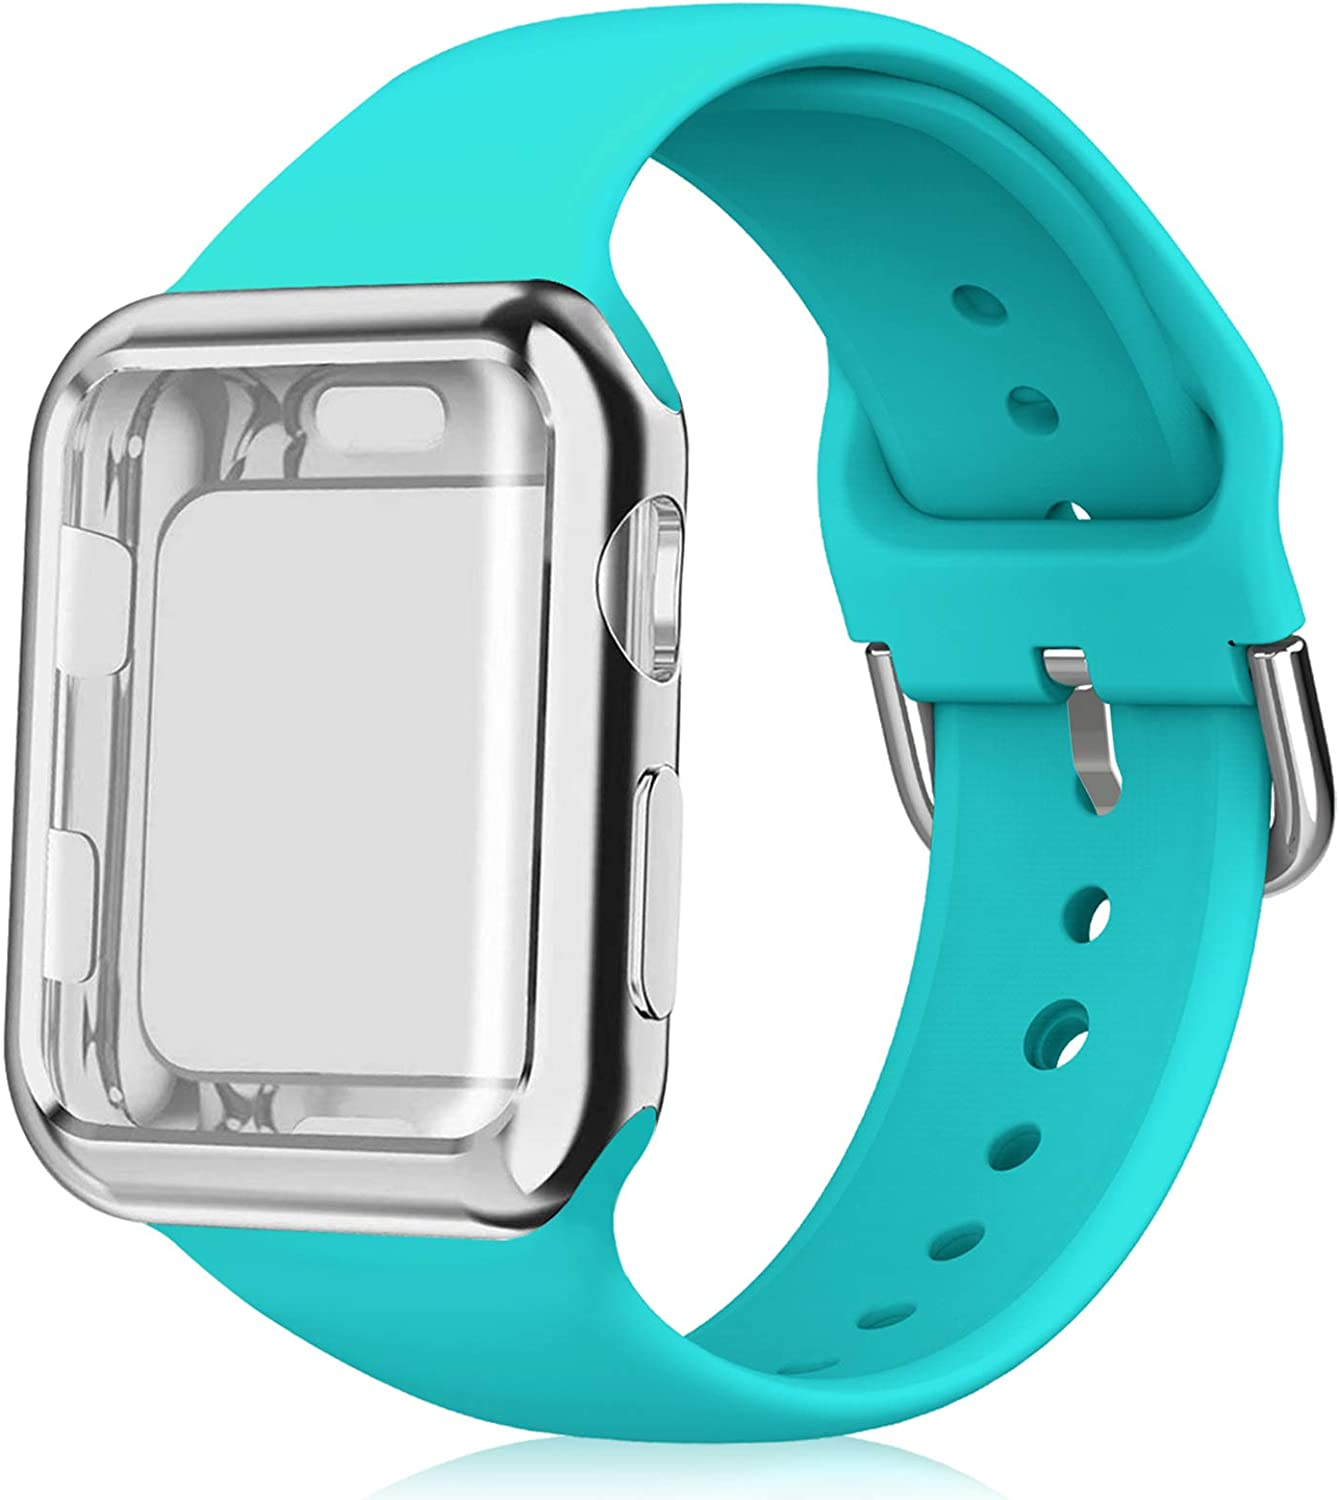 Huishang Compatible for Apple Watch Bands 38mm 40mm 42mm 44mm Women Men with Screen Protector Case,Soft Silicone Sport Replacement Wristband for iWatch Series SE 6 5 4 3 2 1